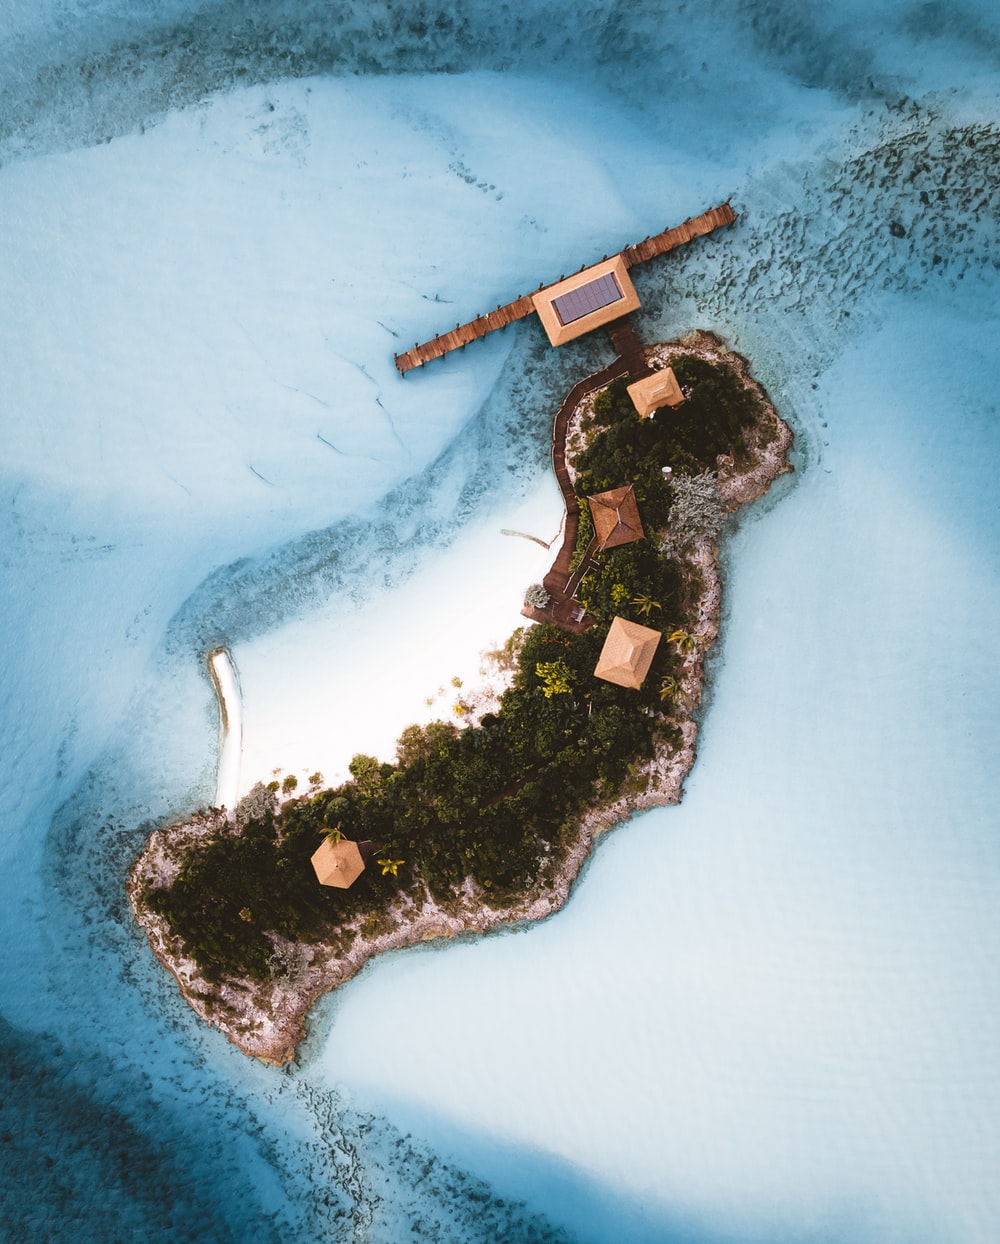 aerial view of island surrounded by body of water